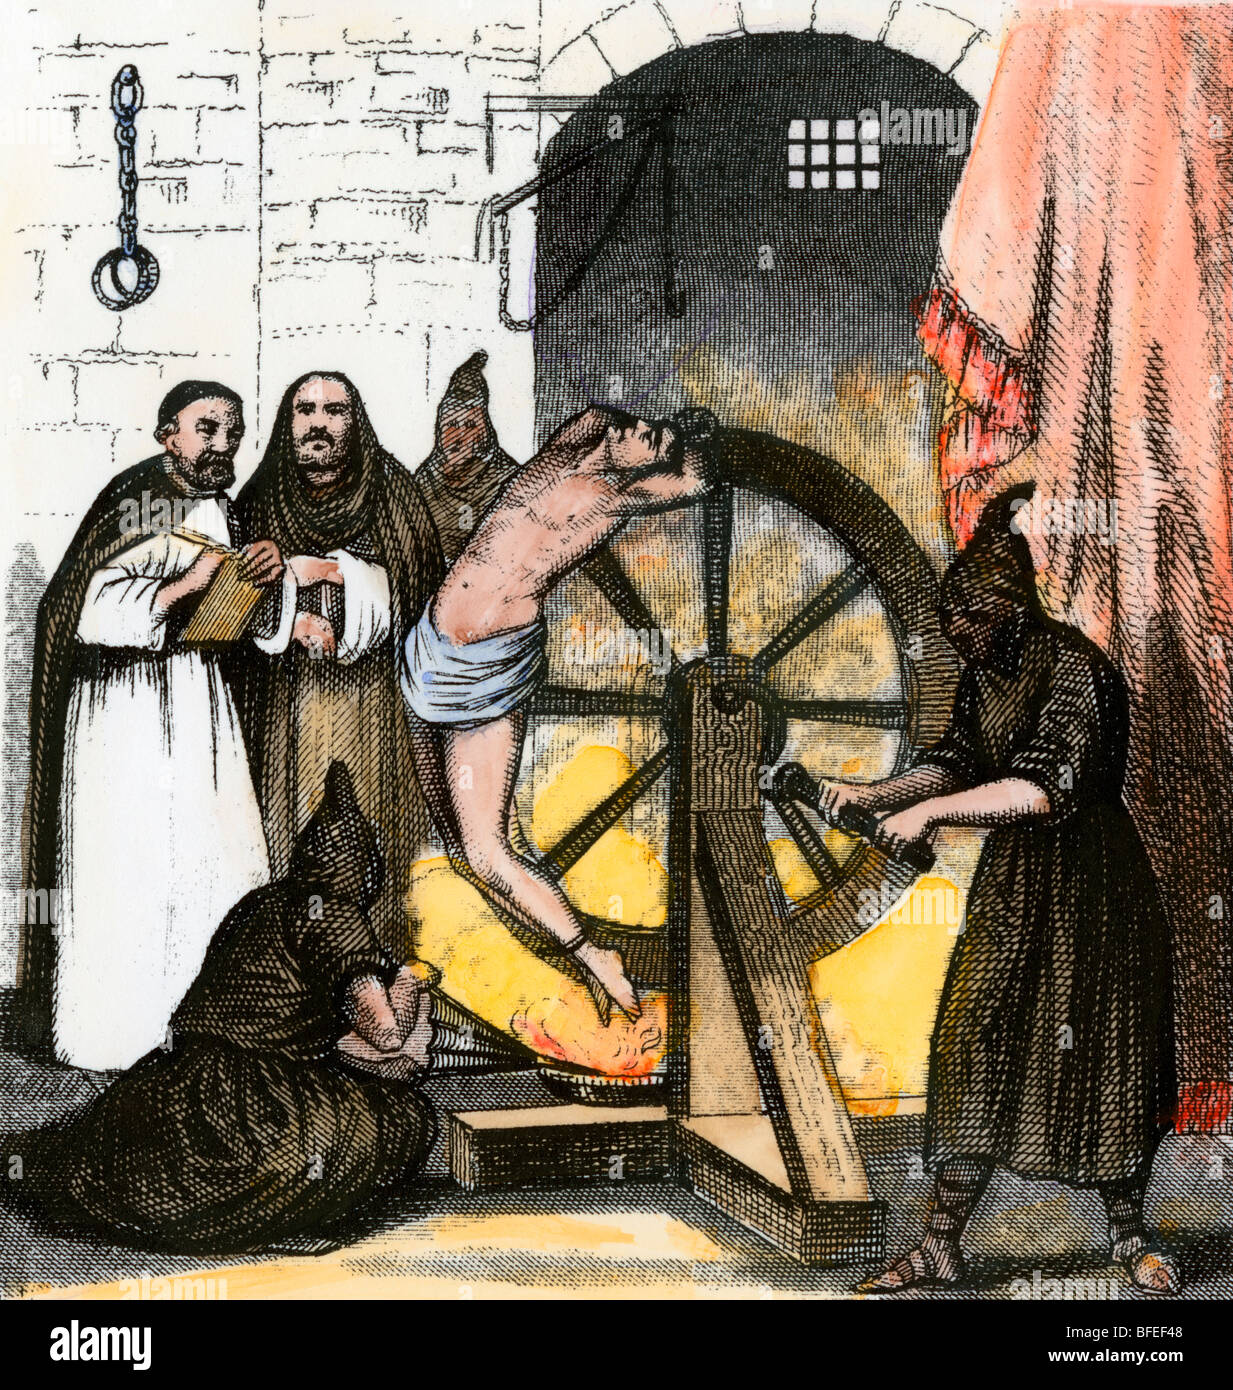 Heretic tortured during the Inquisition. Hand-colored engraving - Stock Image